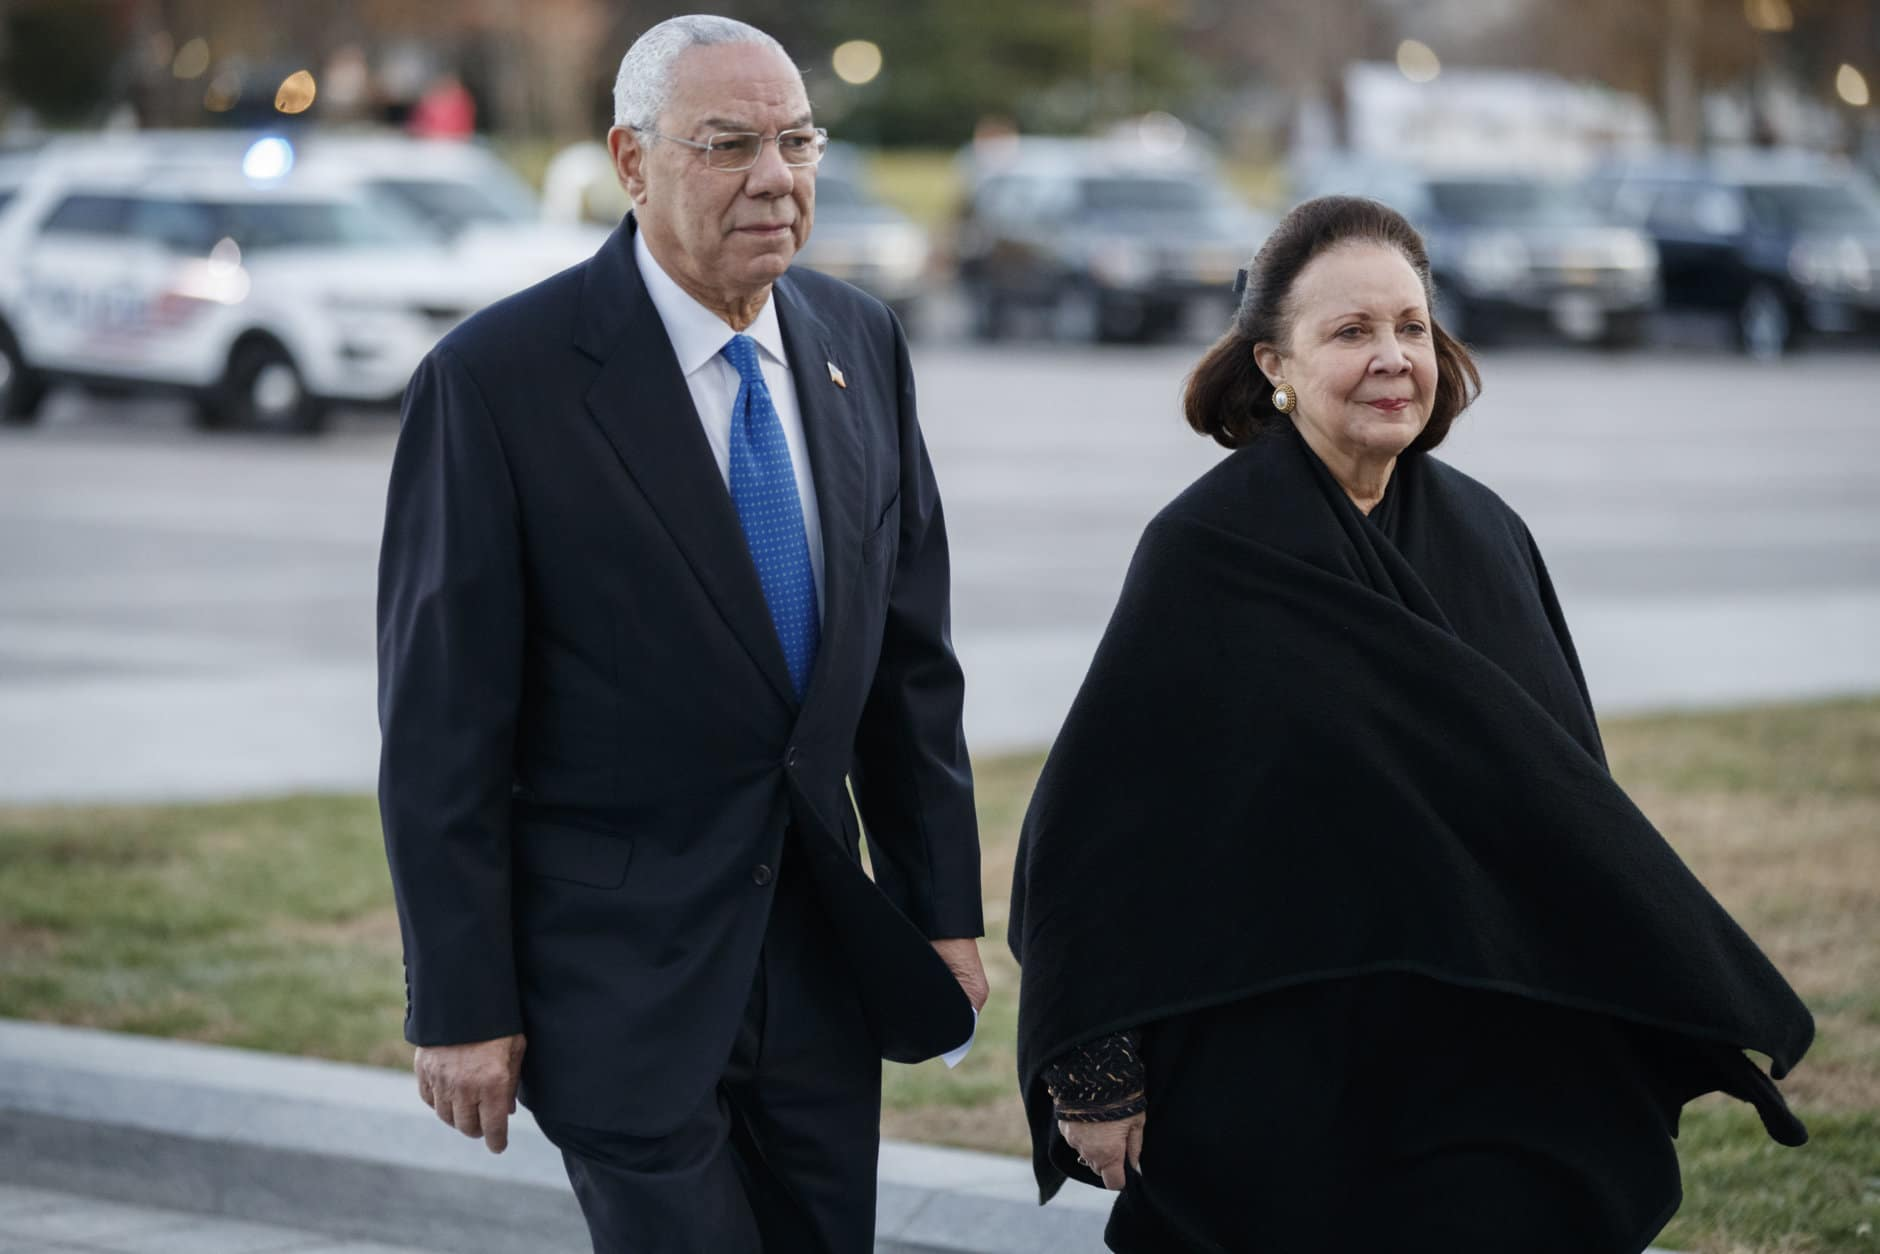 Former Secretary of State Colin Powell and his wife Alma arrives at the U.S. Capitol prior to the arrival of the body of former President George H. W. Bush in Washington, Monday, Dec. 3, 2018. Bush will lie in state in the Capitol Rotunda. (Shawn Thew/Pool Photo via AP)